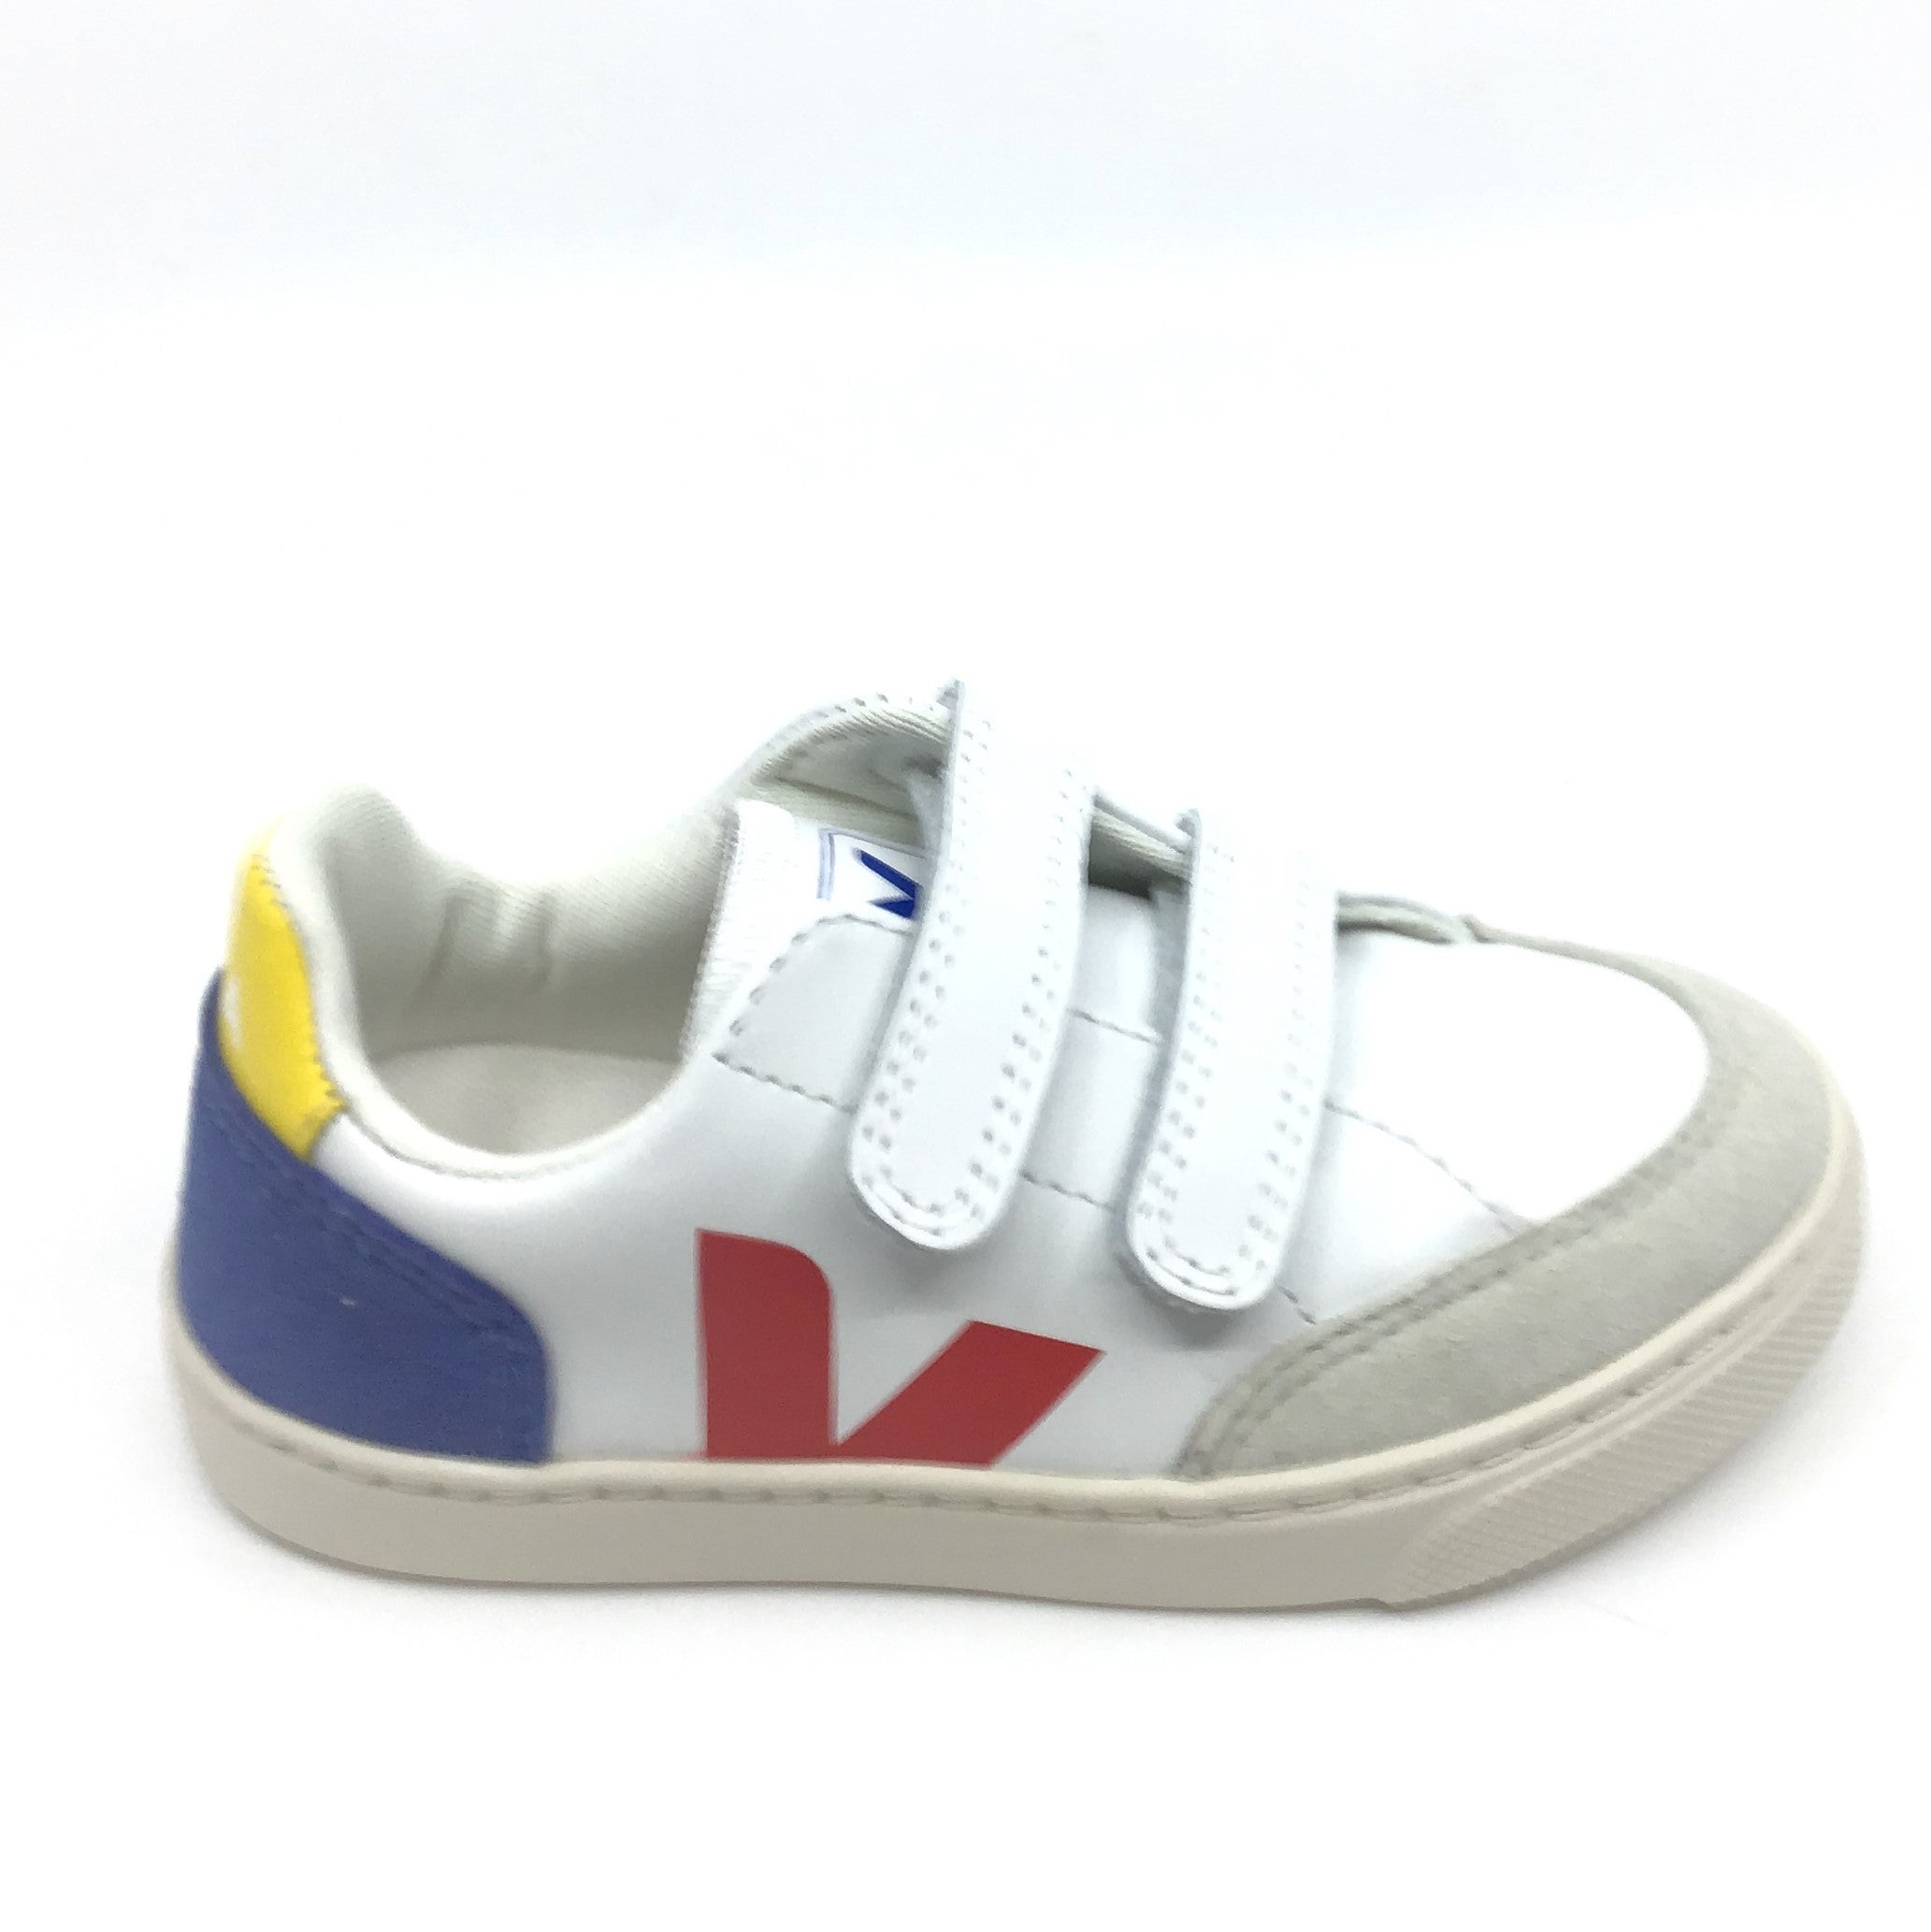 Veja White Sneaker with Red V